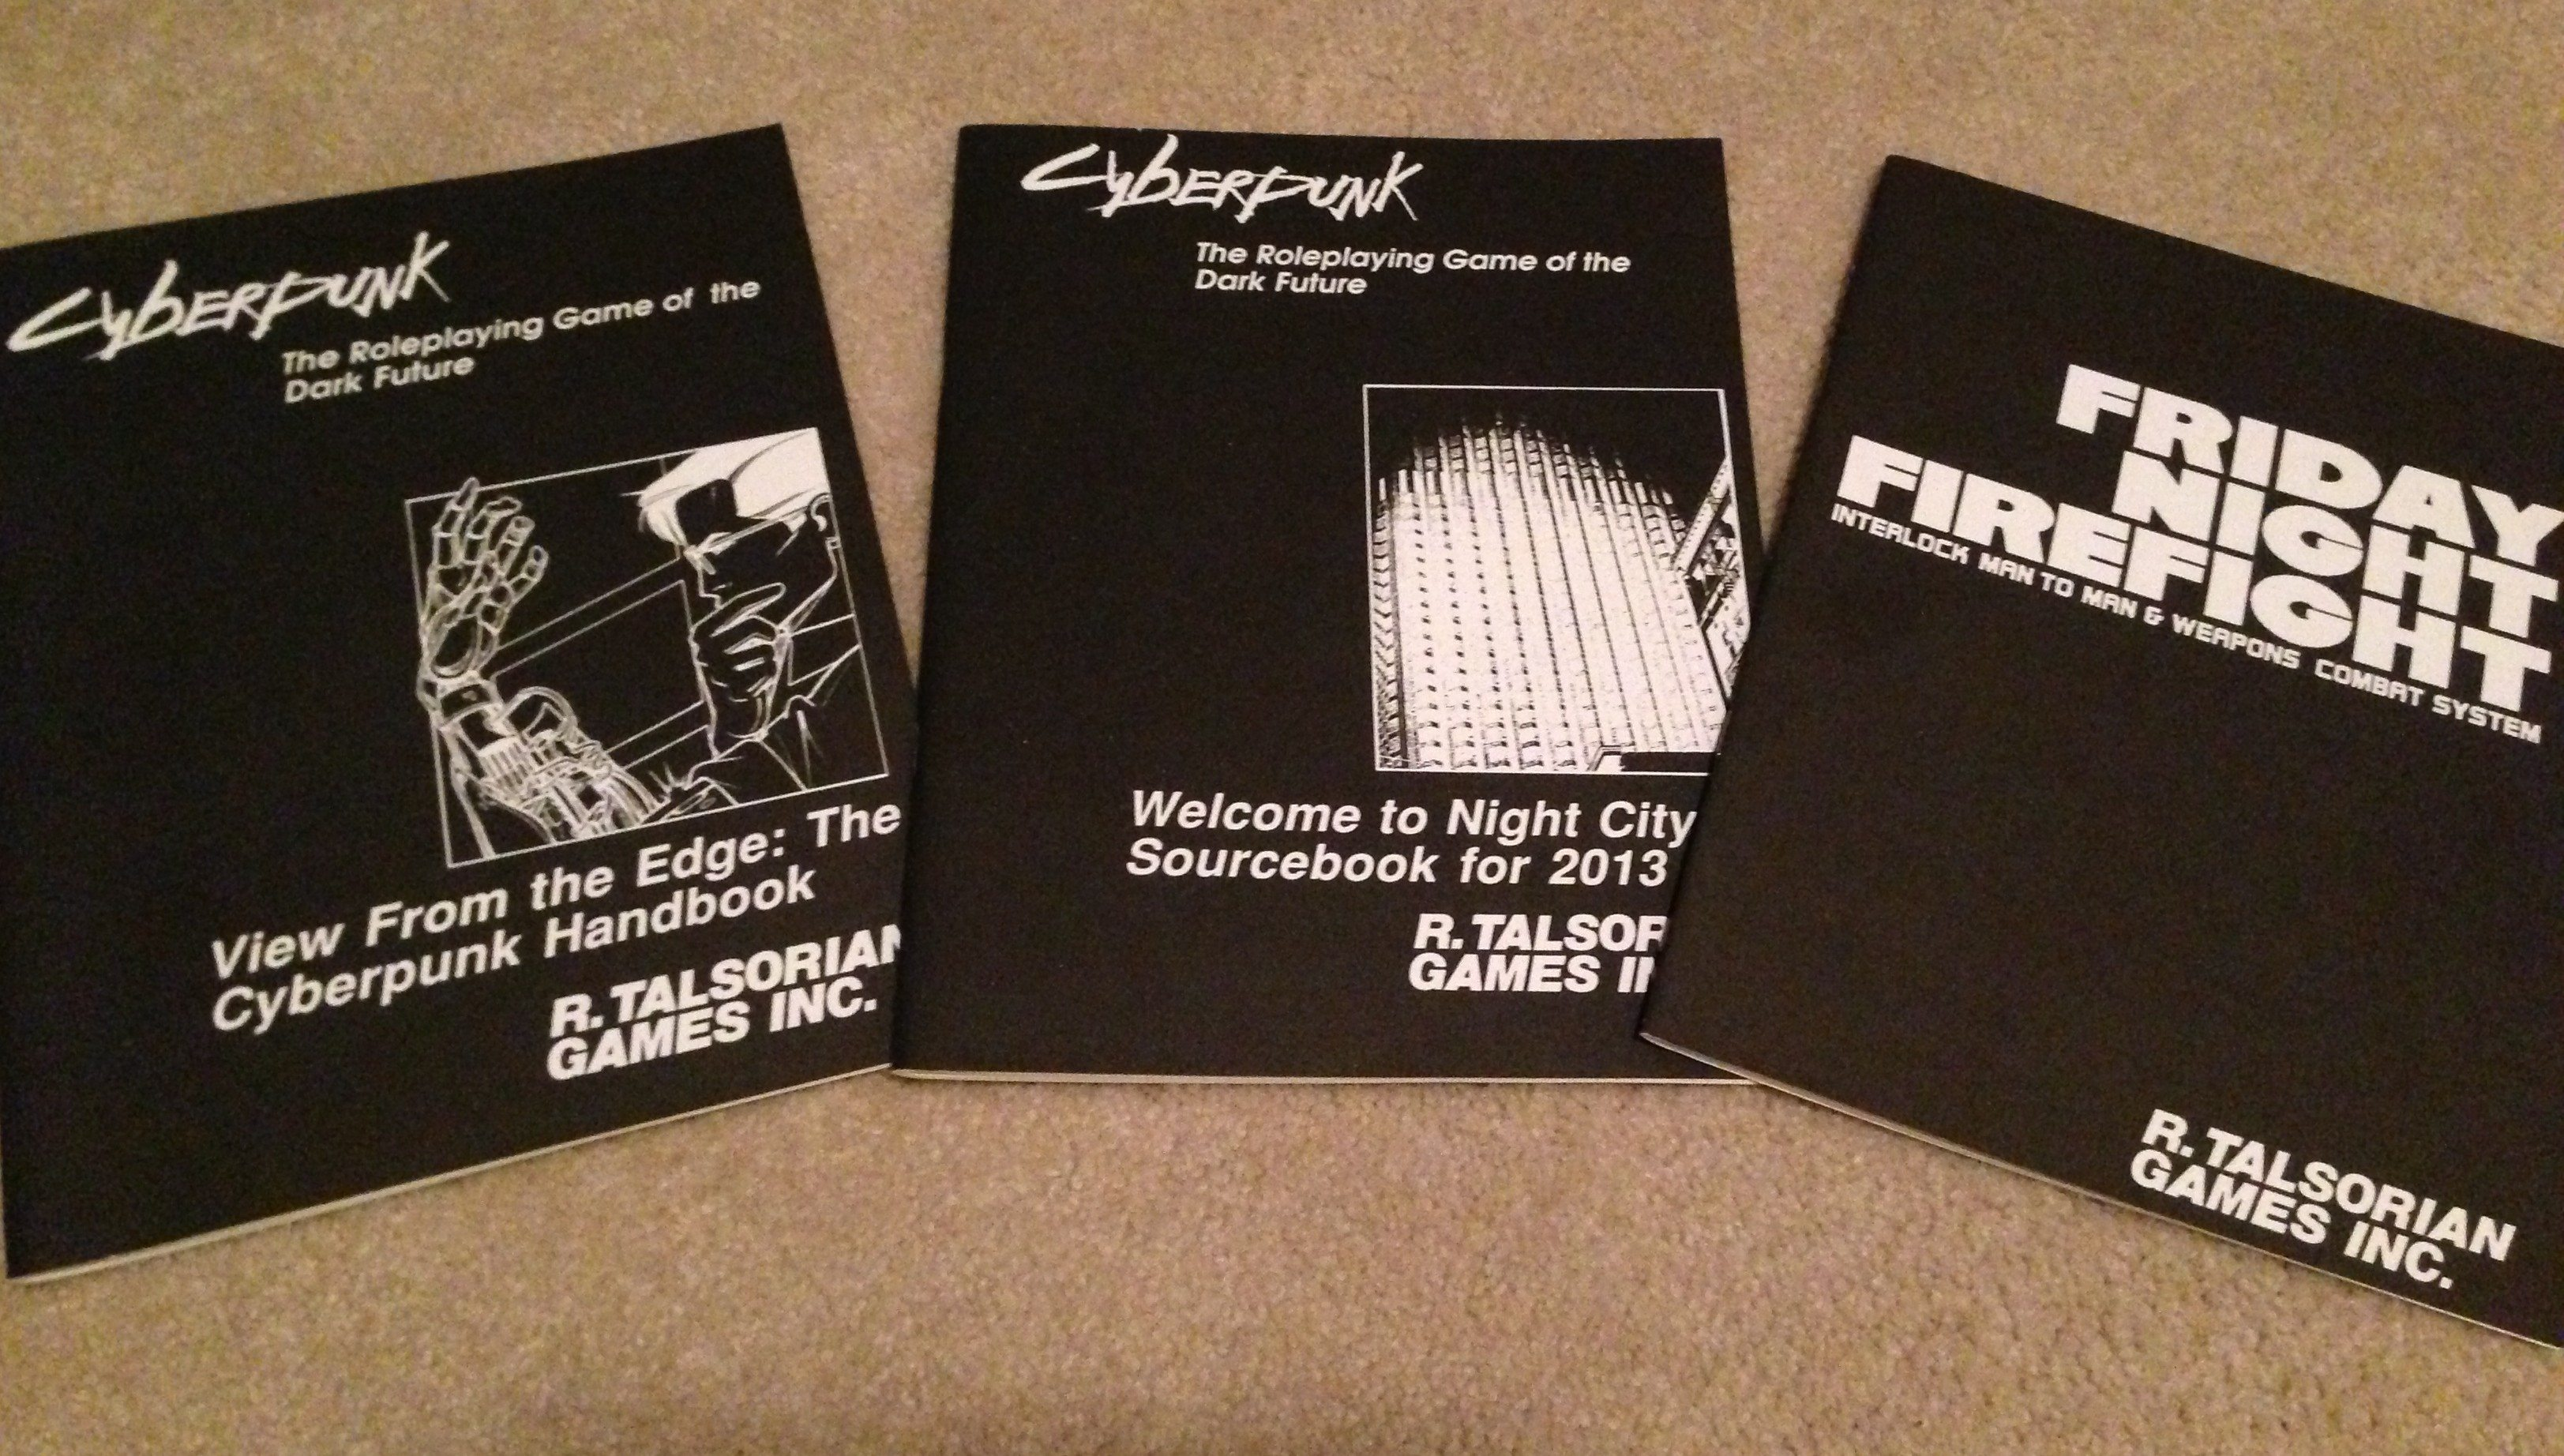 Cyberpunk RPG manuals